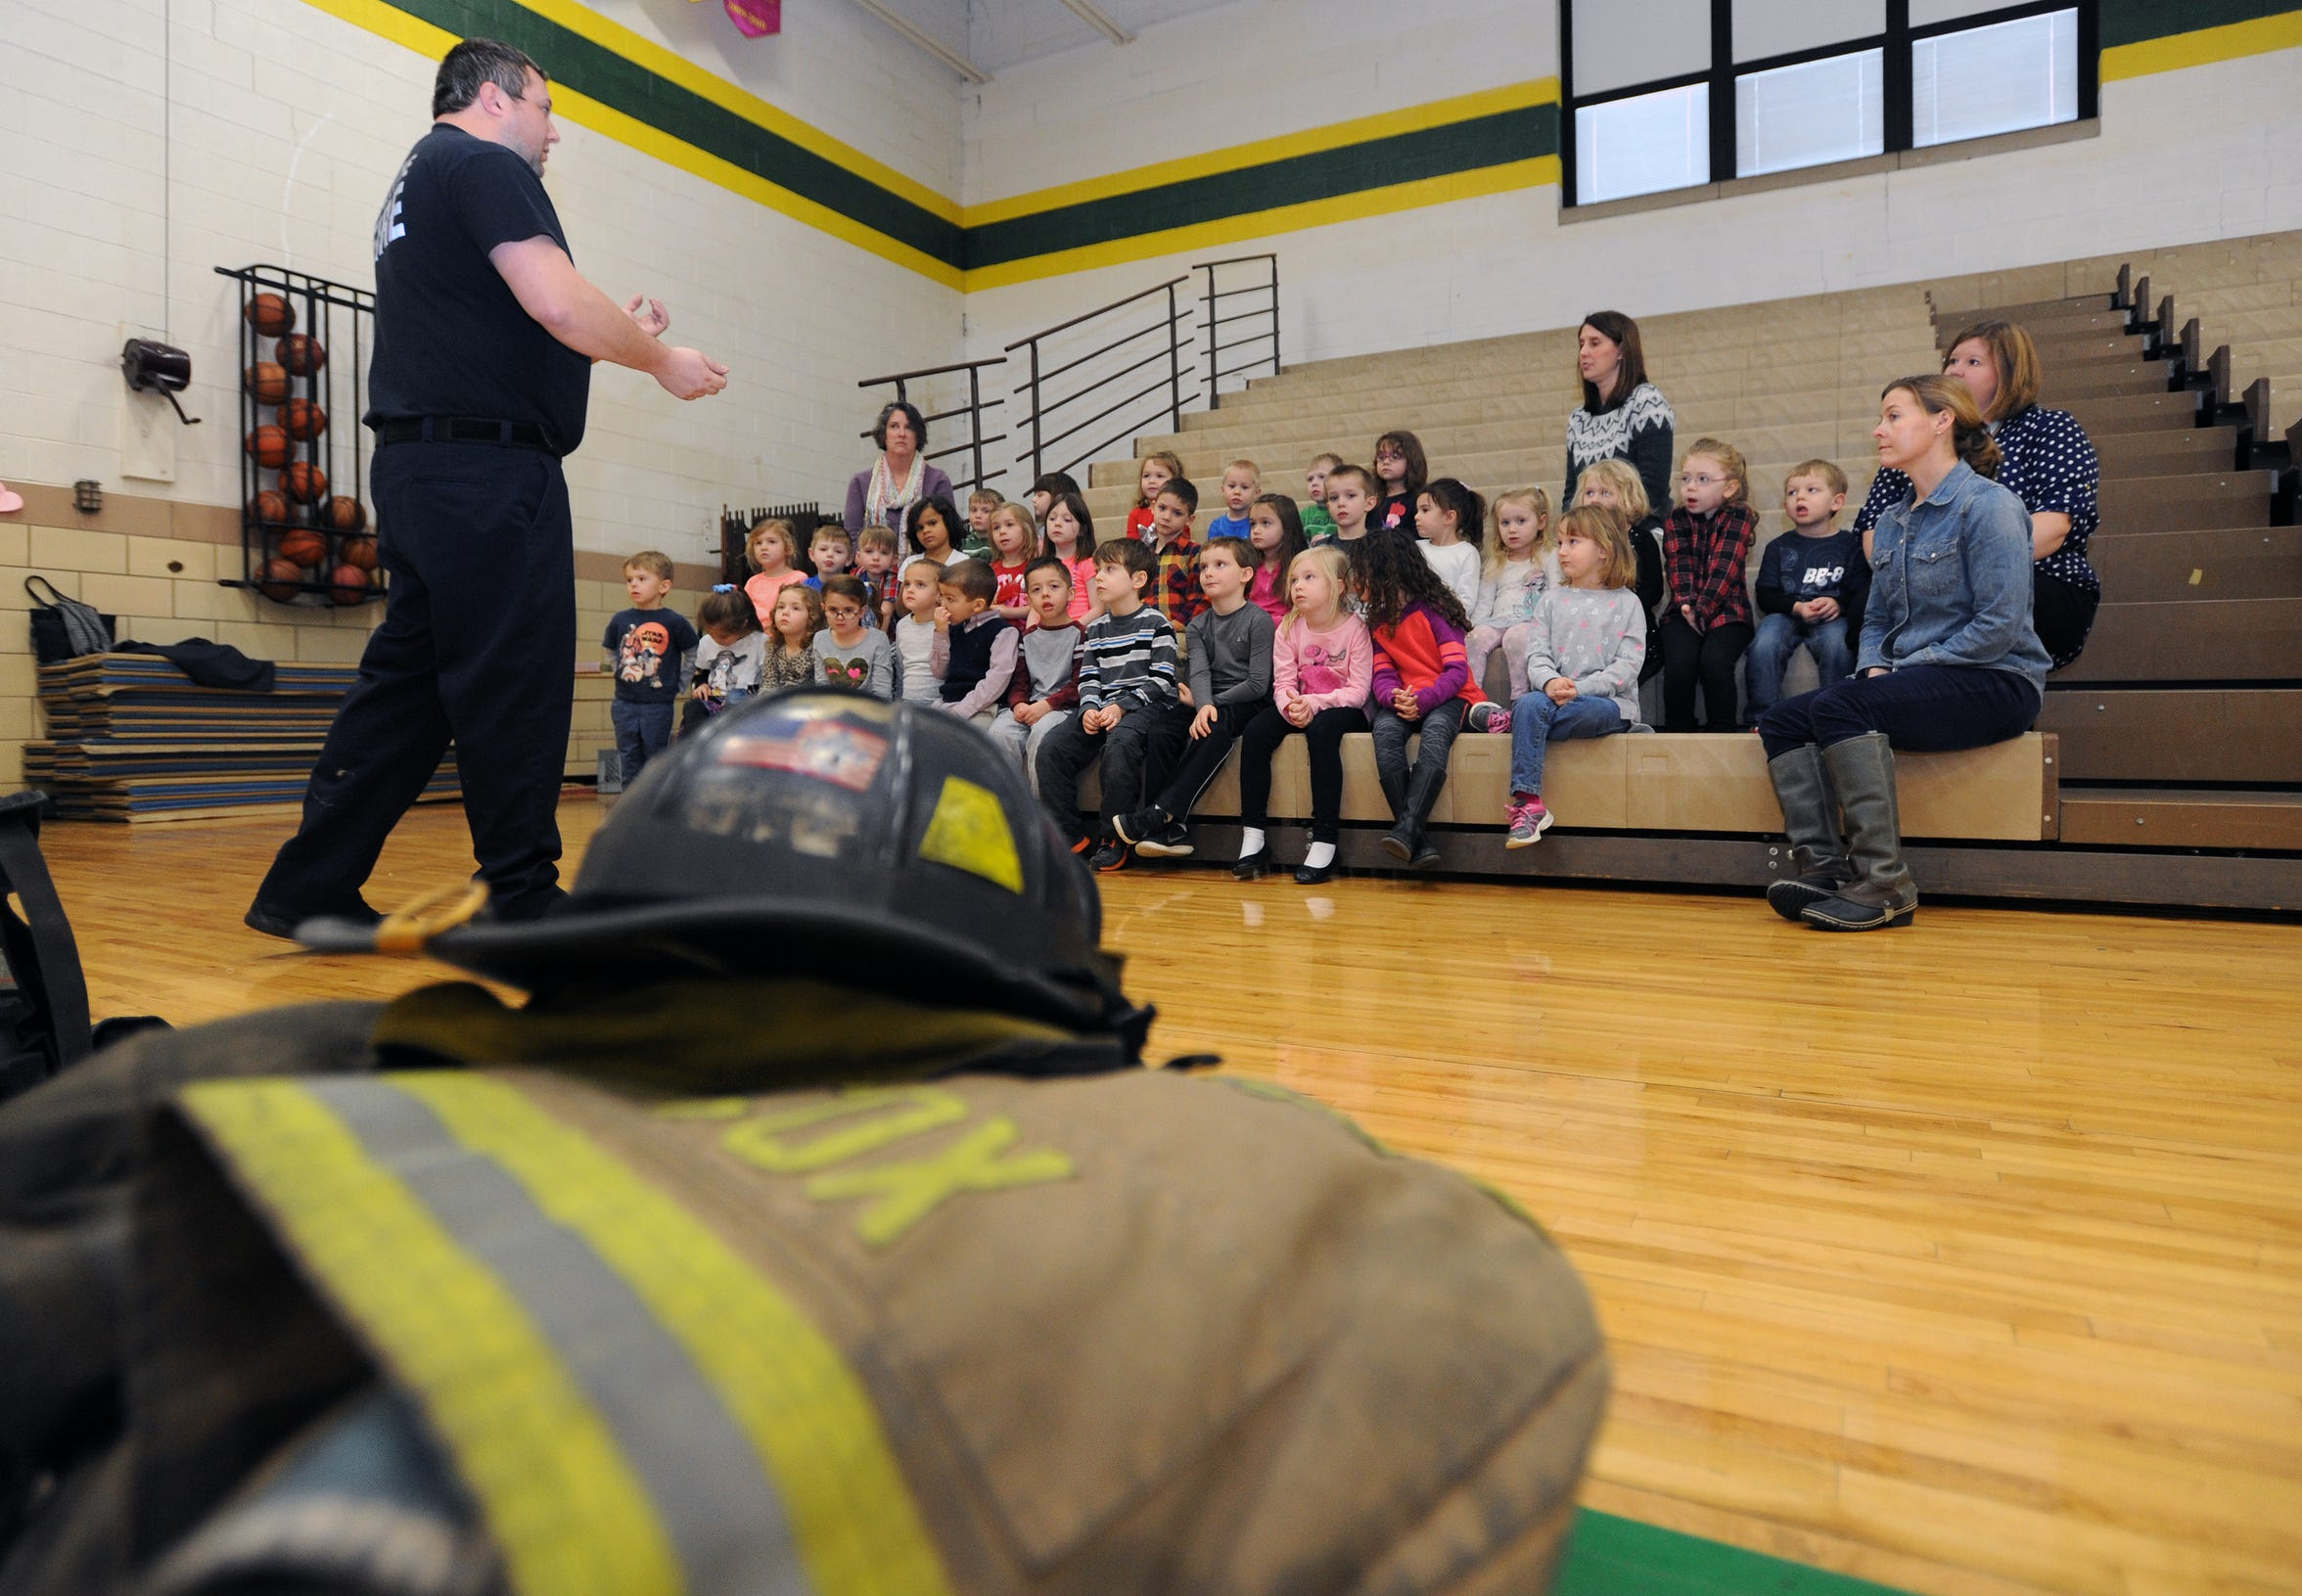 Bryan Cox, with the Chillicothe Fire Department, teaches students about his gear during a presentation Monday, Feb. 8, 2016, at Bishop Flaget Middle School. The program was put on for preschool, kindergarten and first grade classrooms by members of the Aladdin Shriners, Ross County Shrine Club and the Chillicothe Fire Department as part of ÒBe Burn AwareÓ week to educate children in the dangers of potential burn situations.